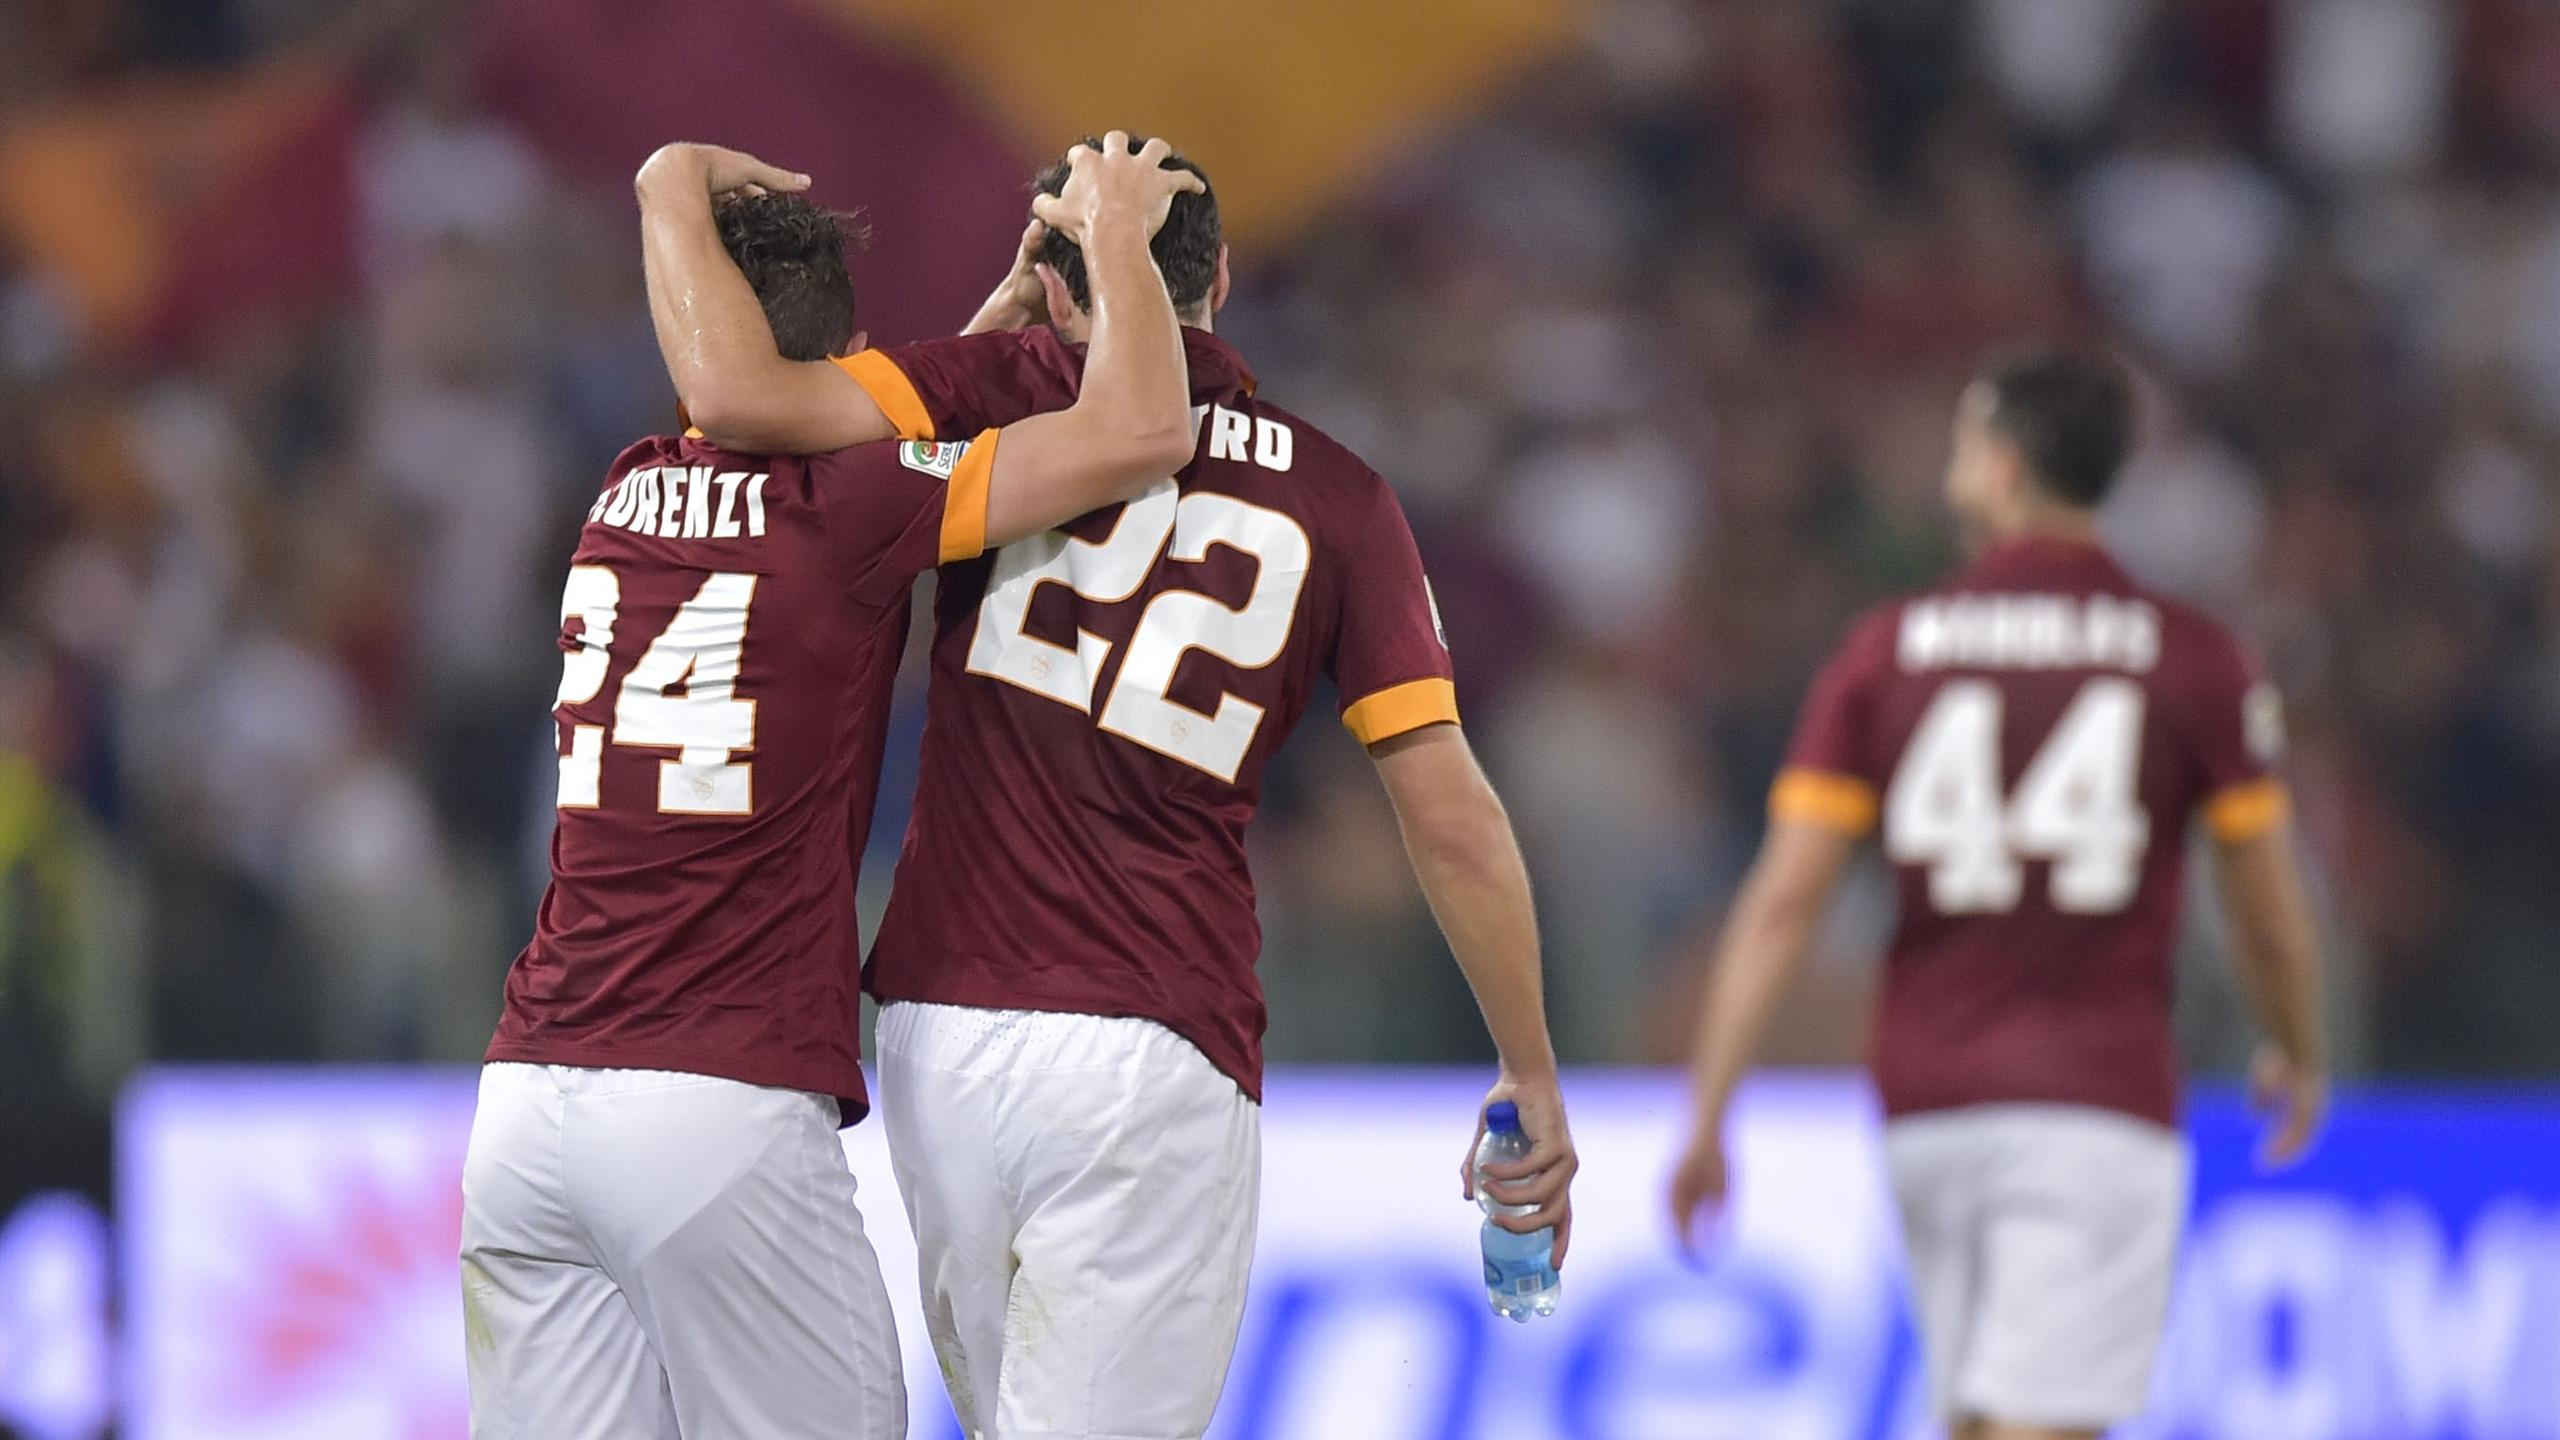 Video: AS Roma vs Hellas Verona